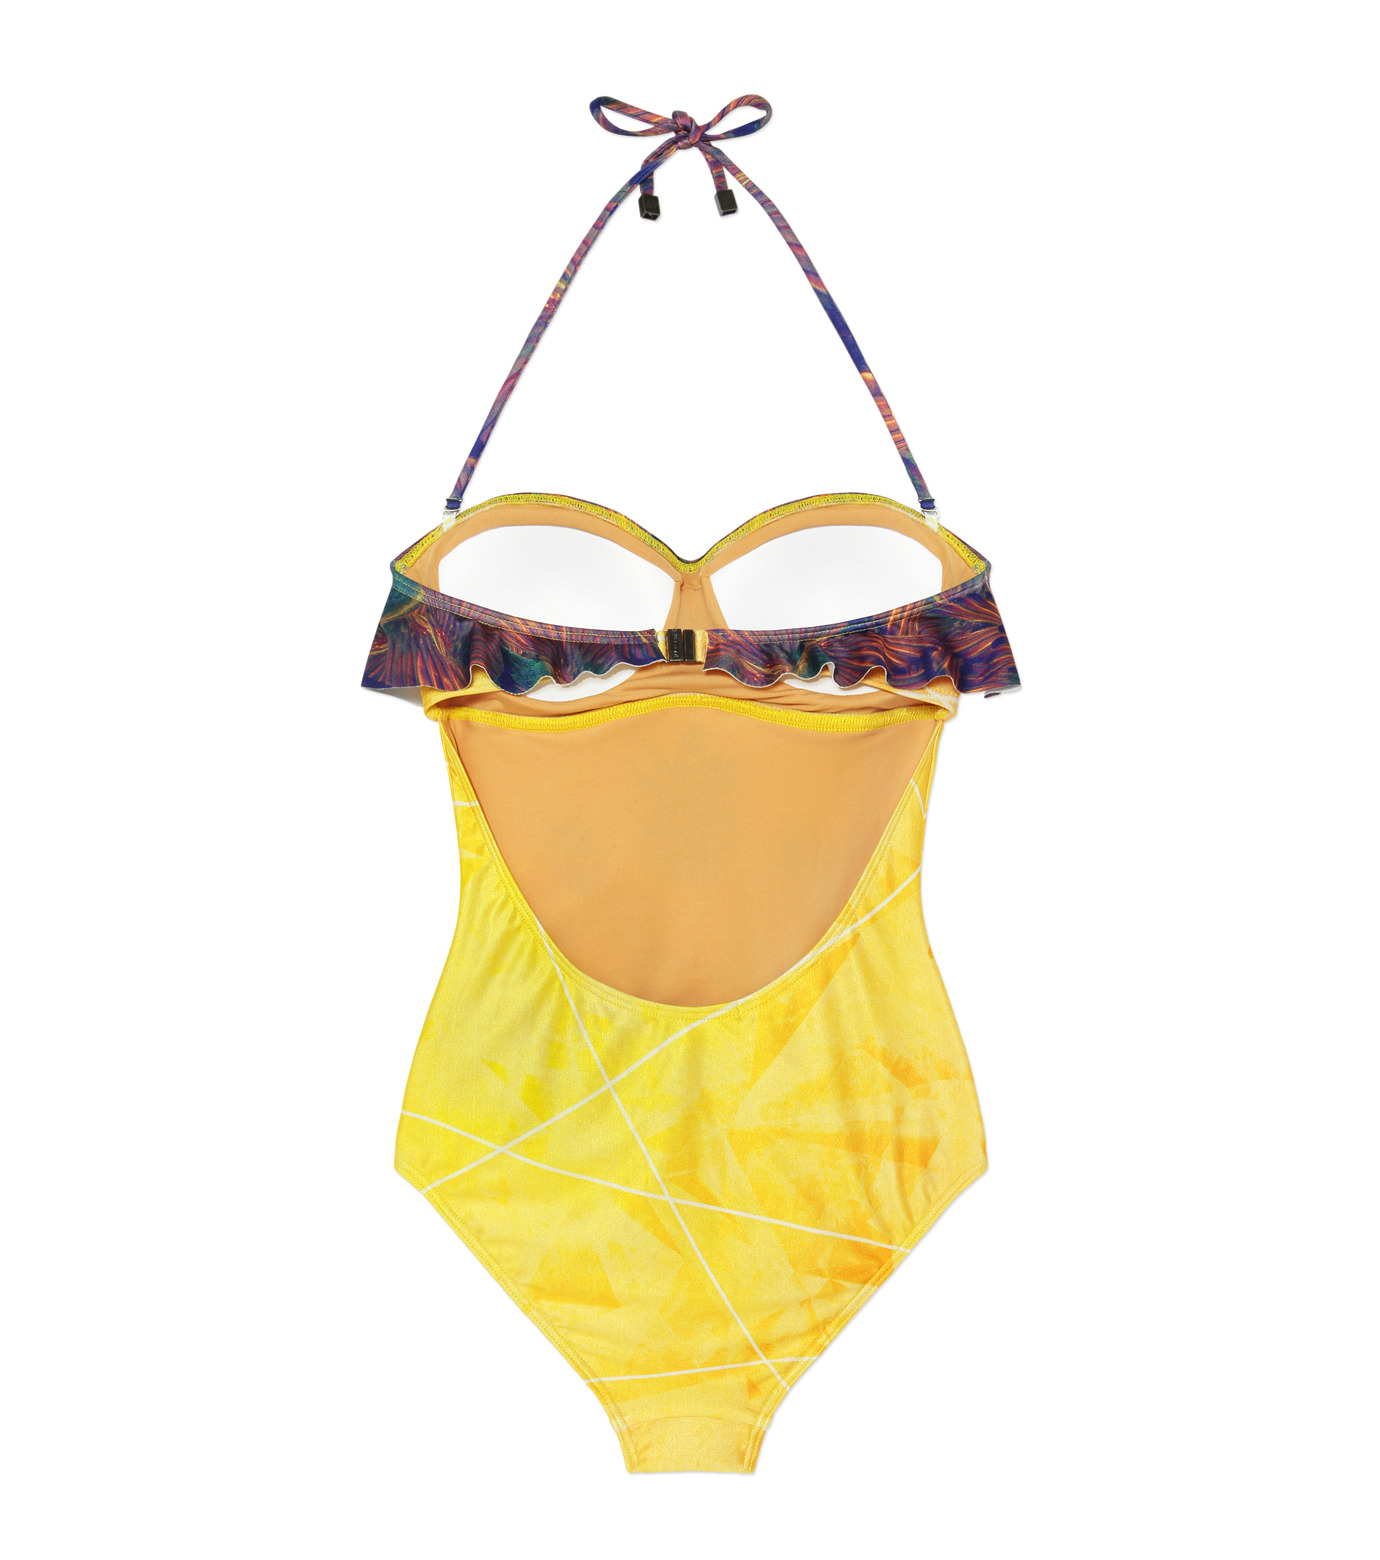 We Are Handsome(ウィー アー ハンサム)のBandeau Frill One Piece-YELLOW(SWIMWEAR/SWIMWEAR)-BFOP161402-32 拡大詳細画像2